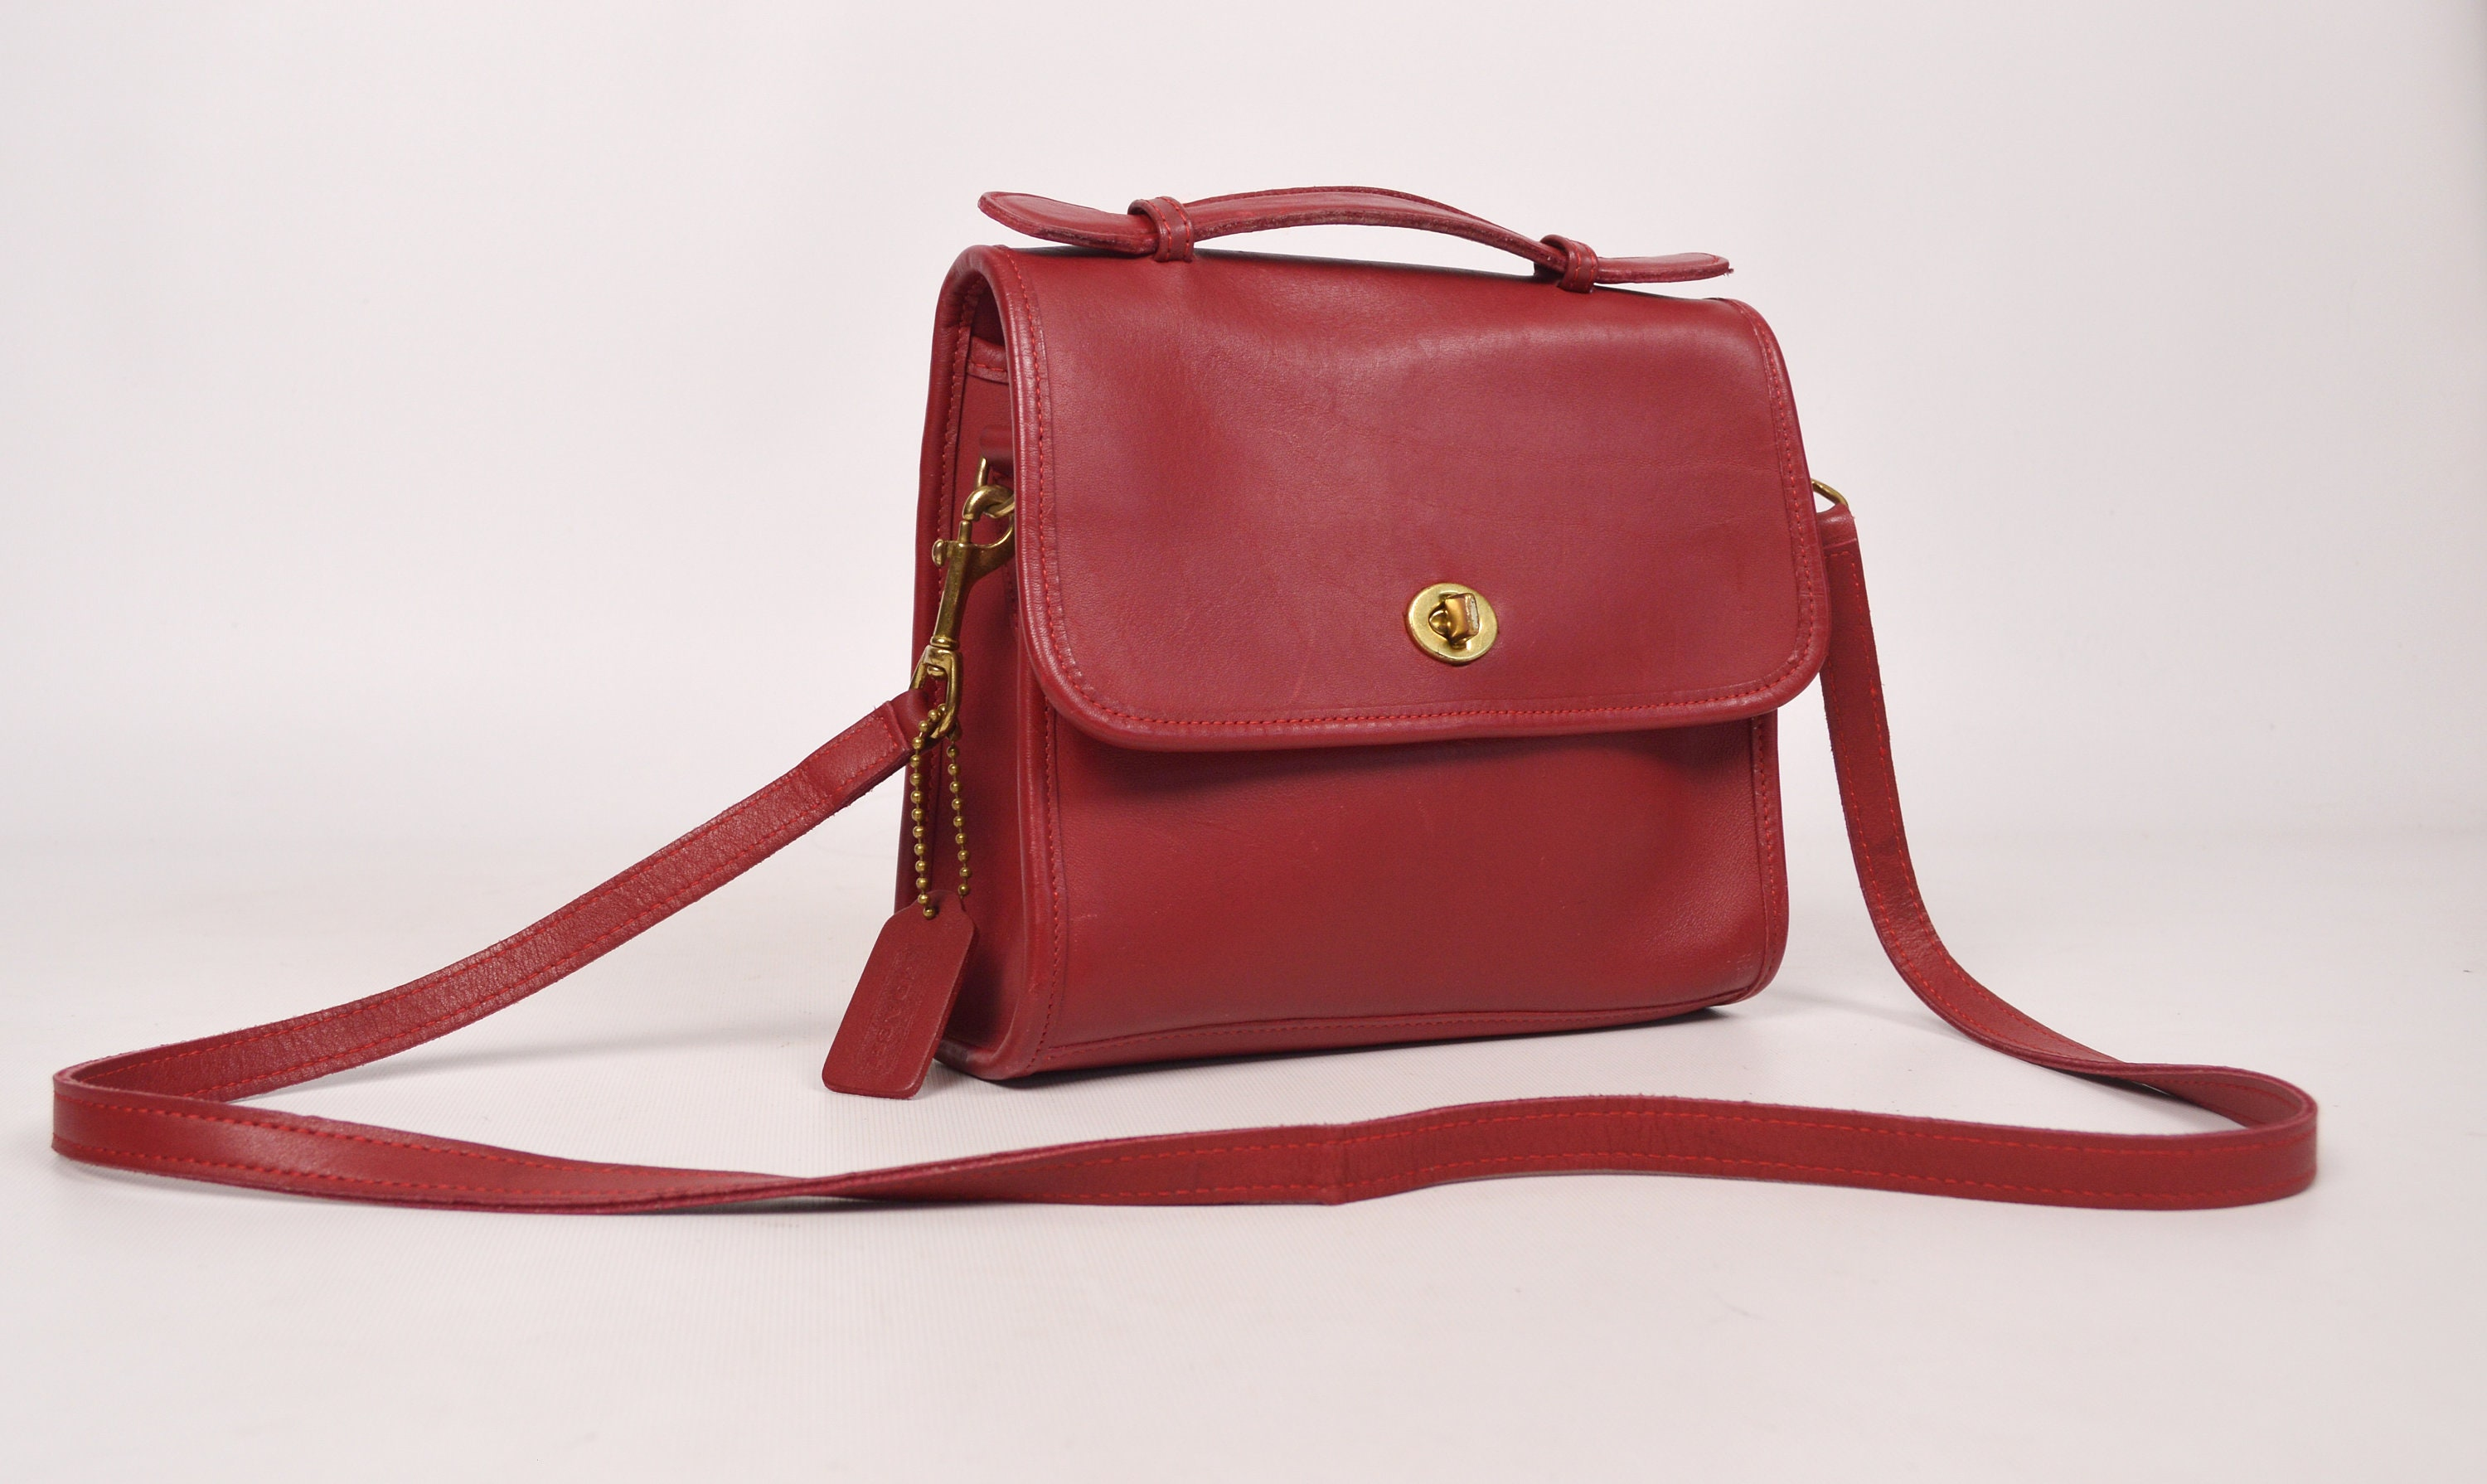 Vintage Red Court Coach Bag Purse Crossbody Leather cf2fffb1454f0